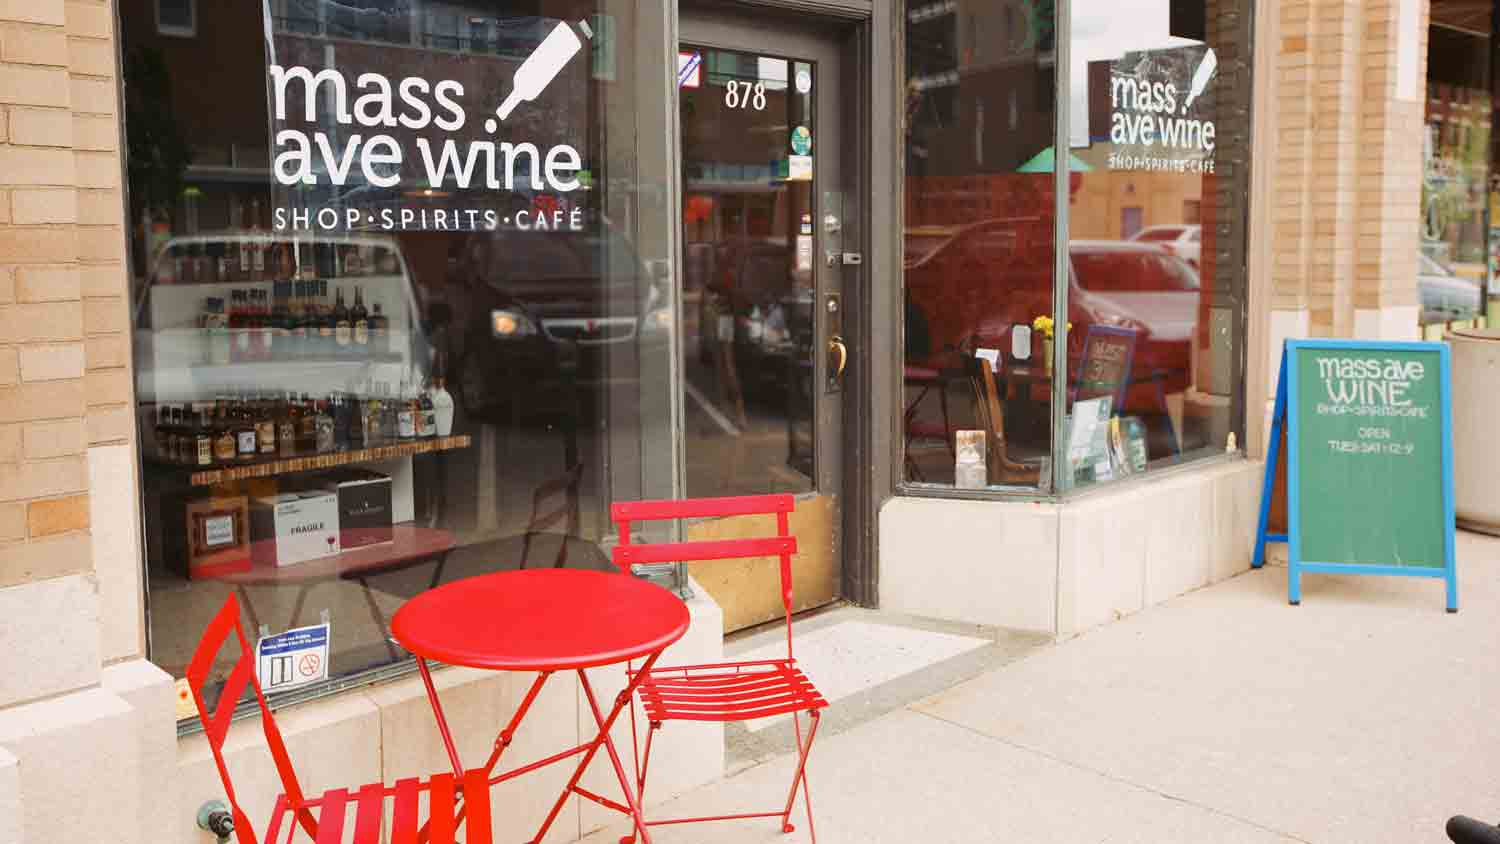 Mass ave wine shoppe 2